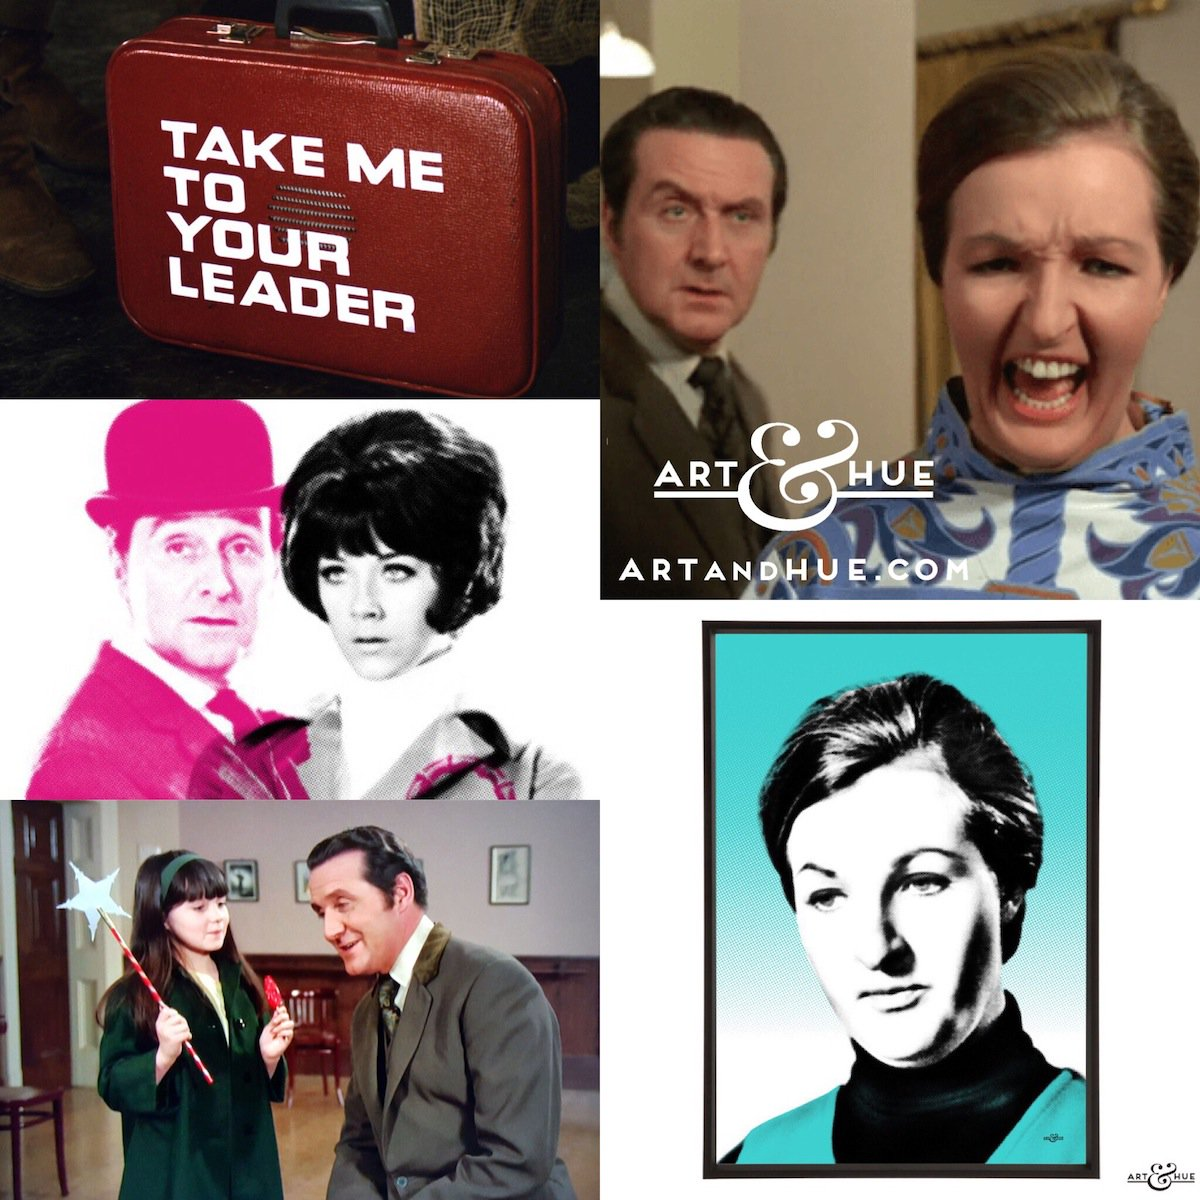 """50 years ago today, The Avengers episode """"Take Me To Your Leader"""" aired on American TV for the first time, starring Linda Thorson & Penelope Keith.   http://artandhue.com/theavengers   #TheAvengers #LindaThorson #TaraKing #PatrickMacnee #OnThisDay #OTD #TakeMeToYourLeader #PenelopeKeith"""